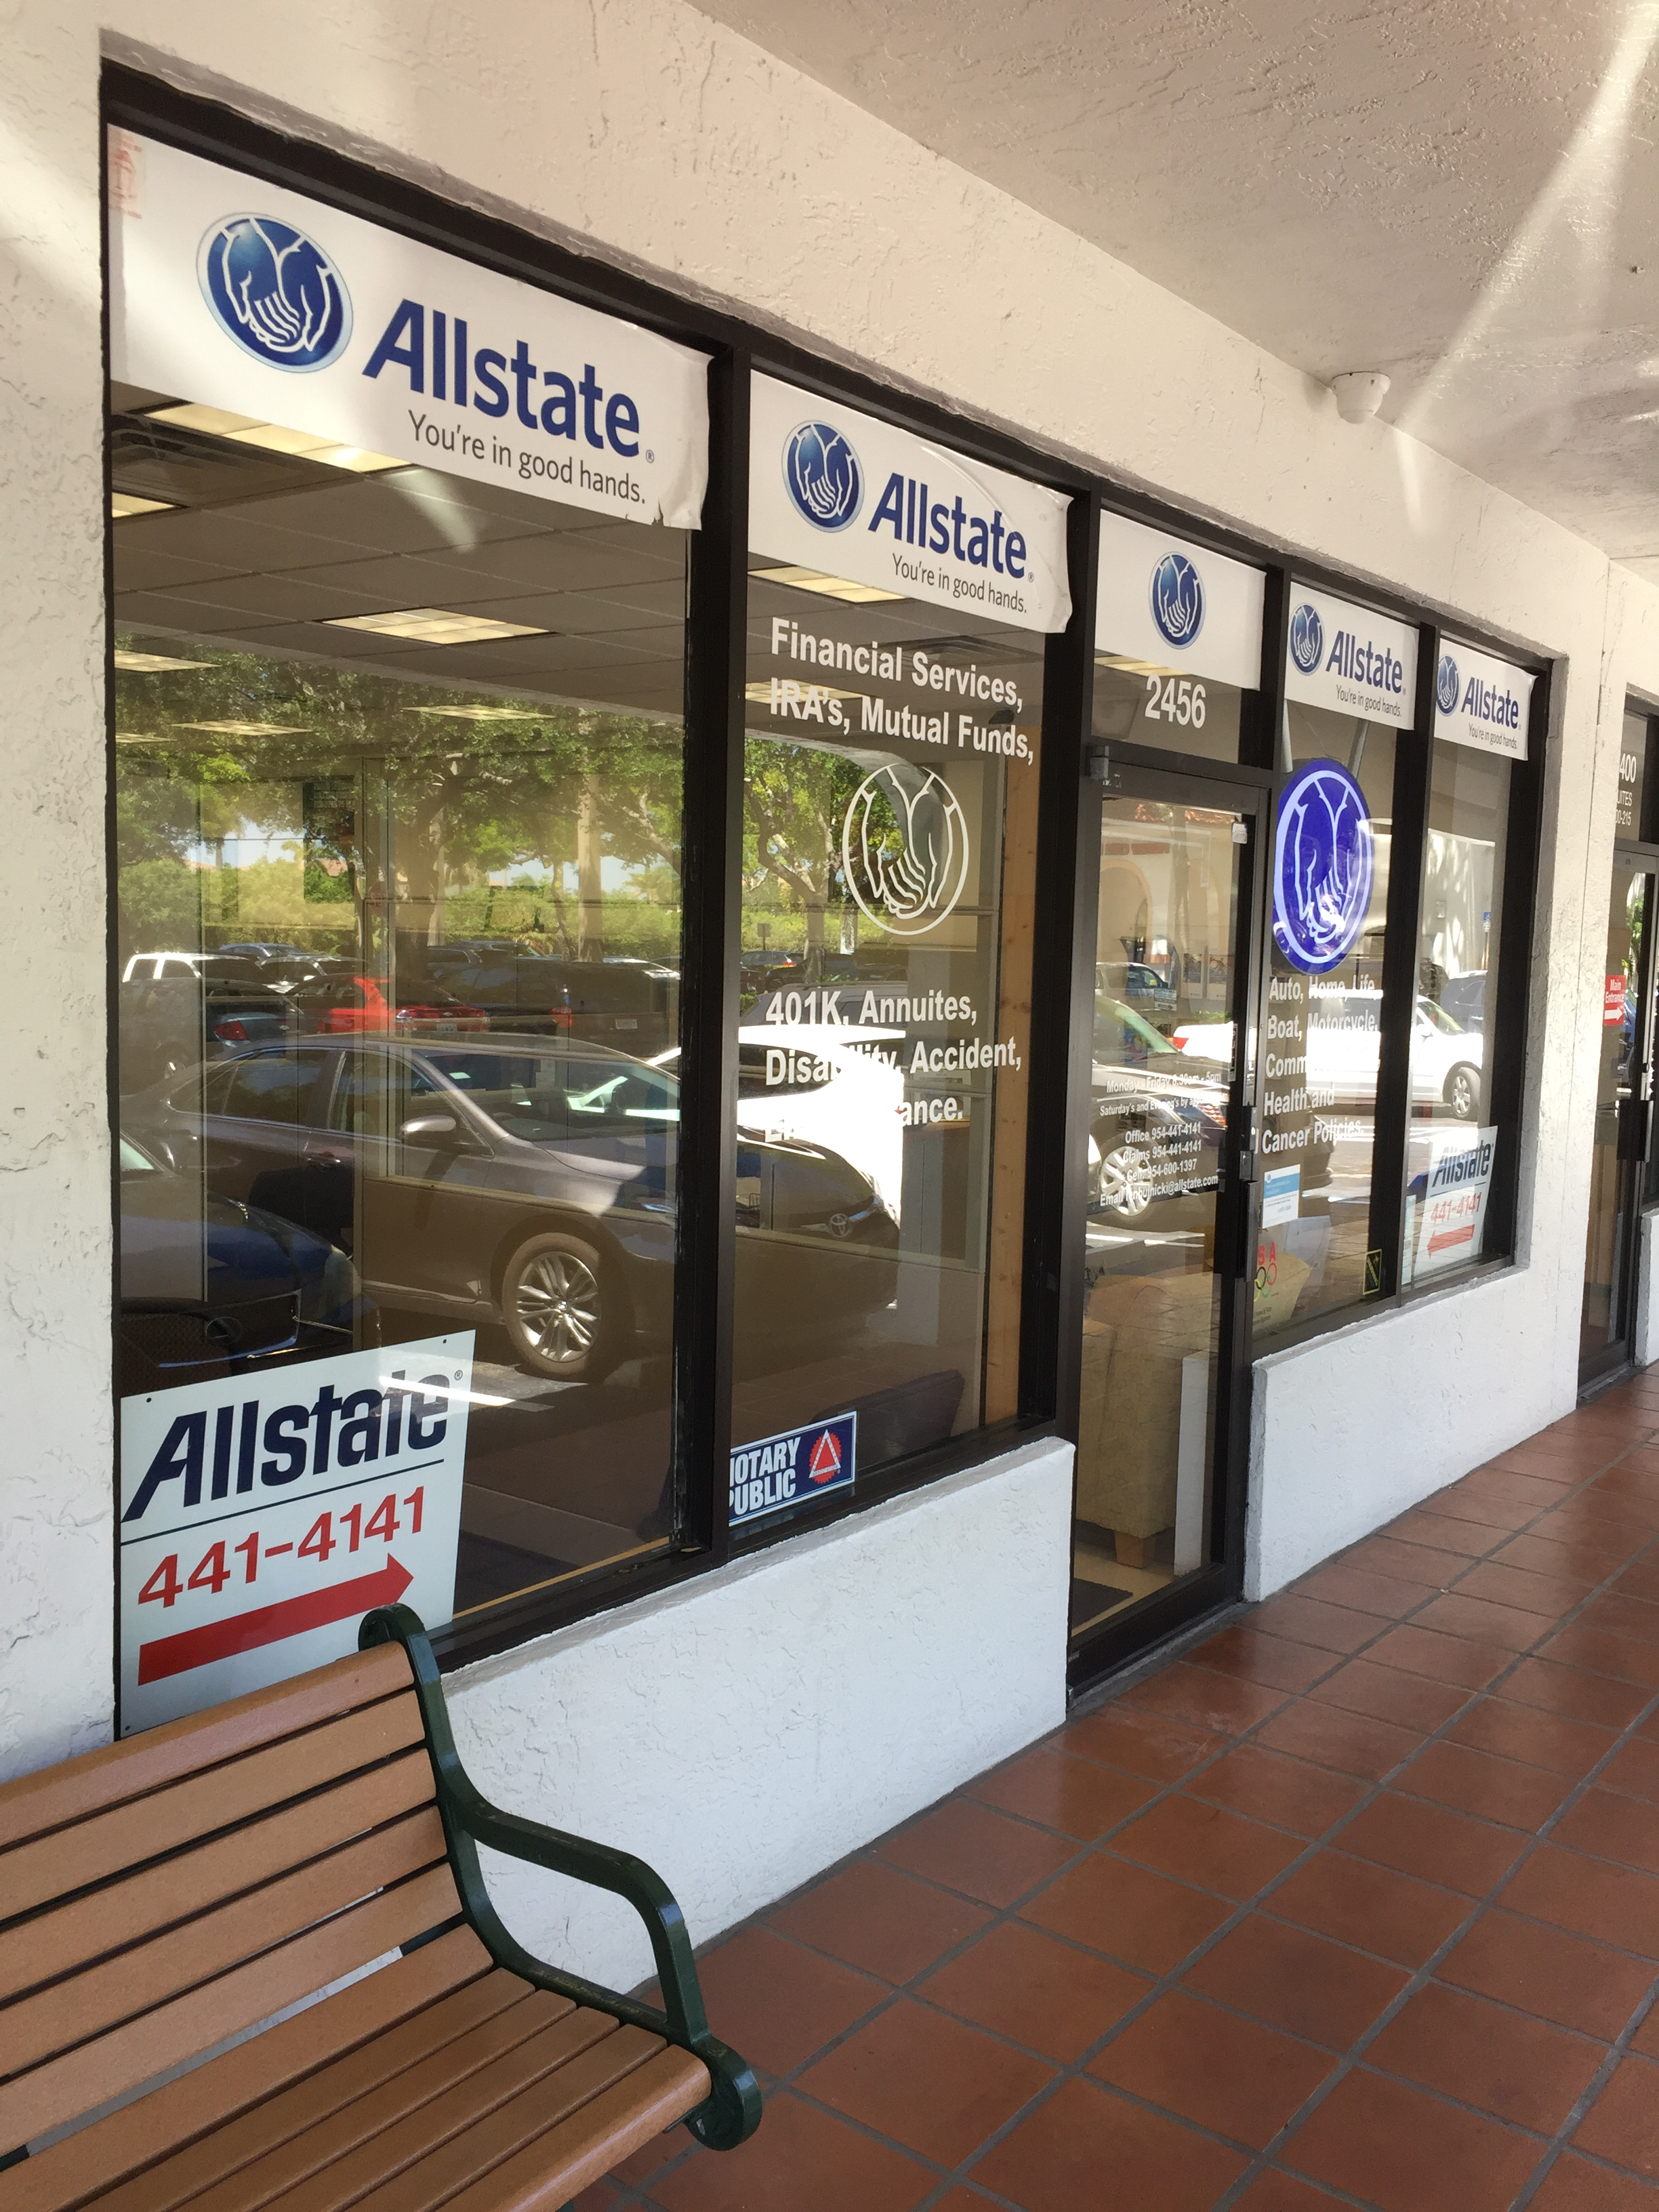 Luis Necuze: Allstate Insurance image 5